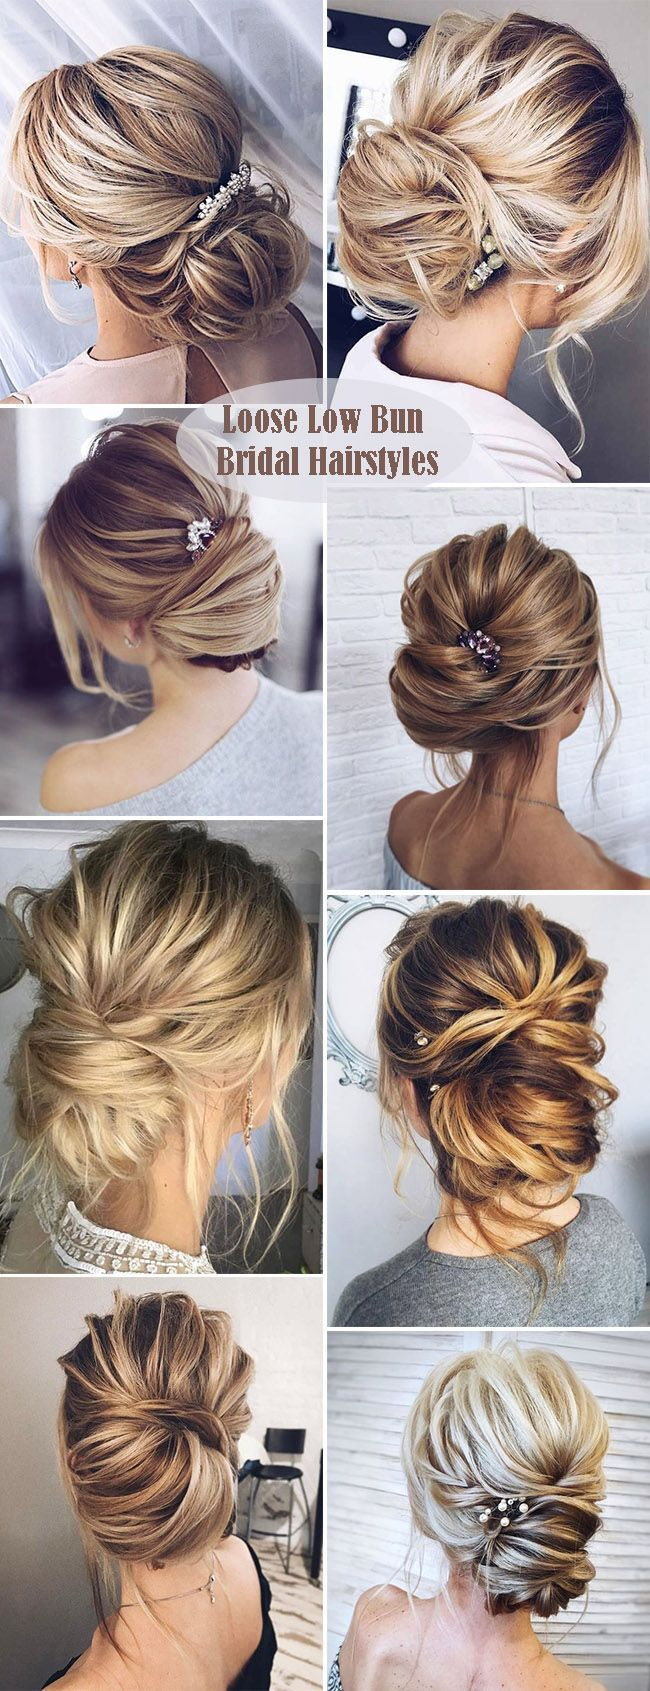 dropdead wedding hairstyles for all brides bun updo